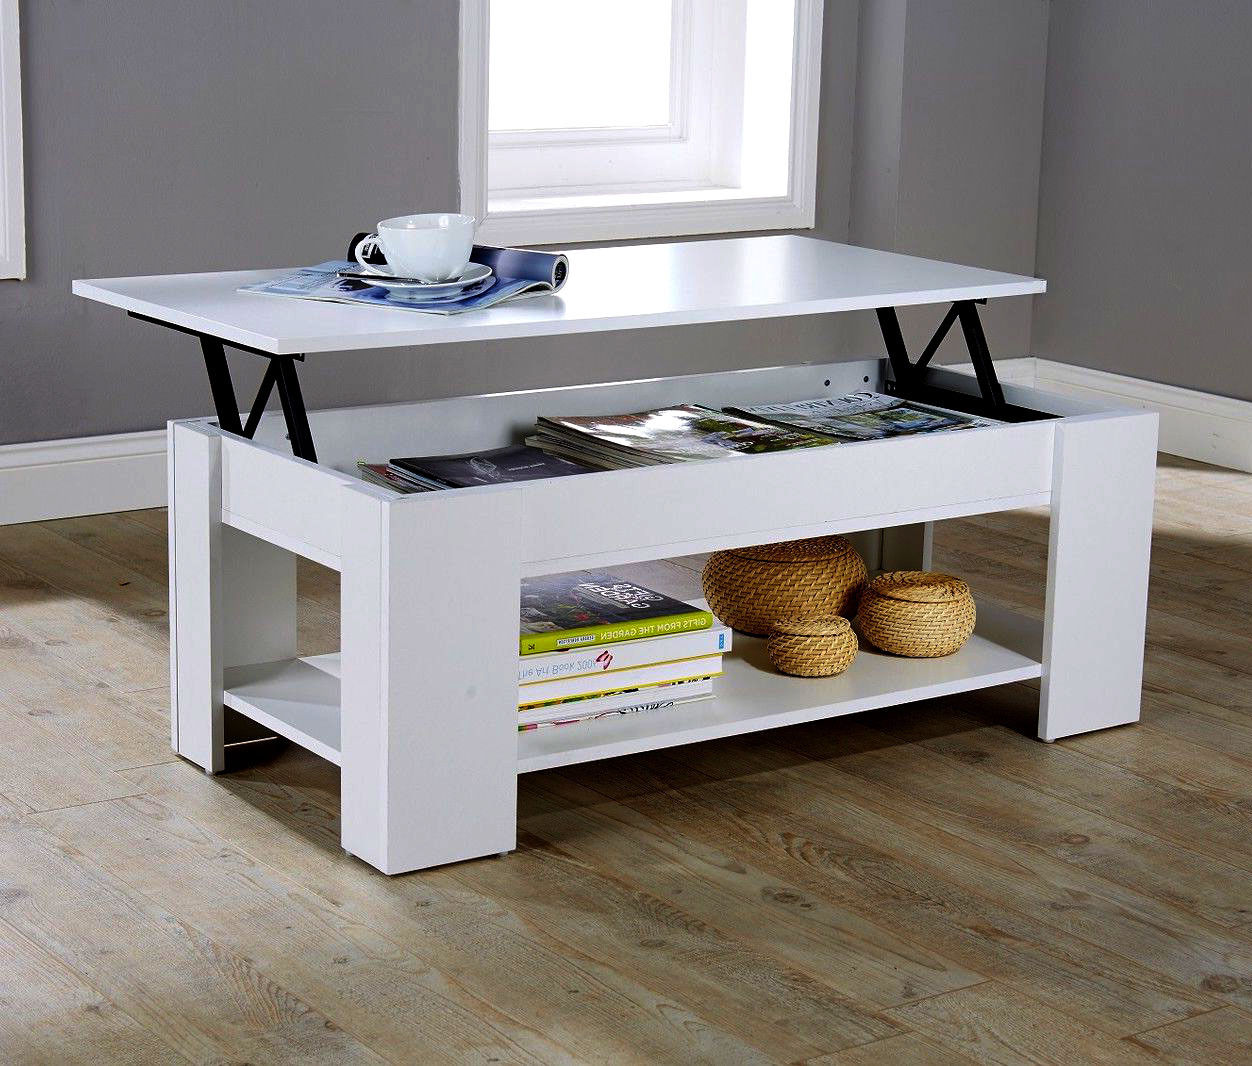 MODERN WHITE LIFT UP COFFEE TABLE CONTEMPORARY STORAGE